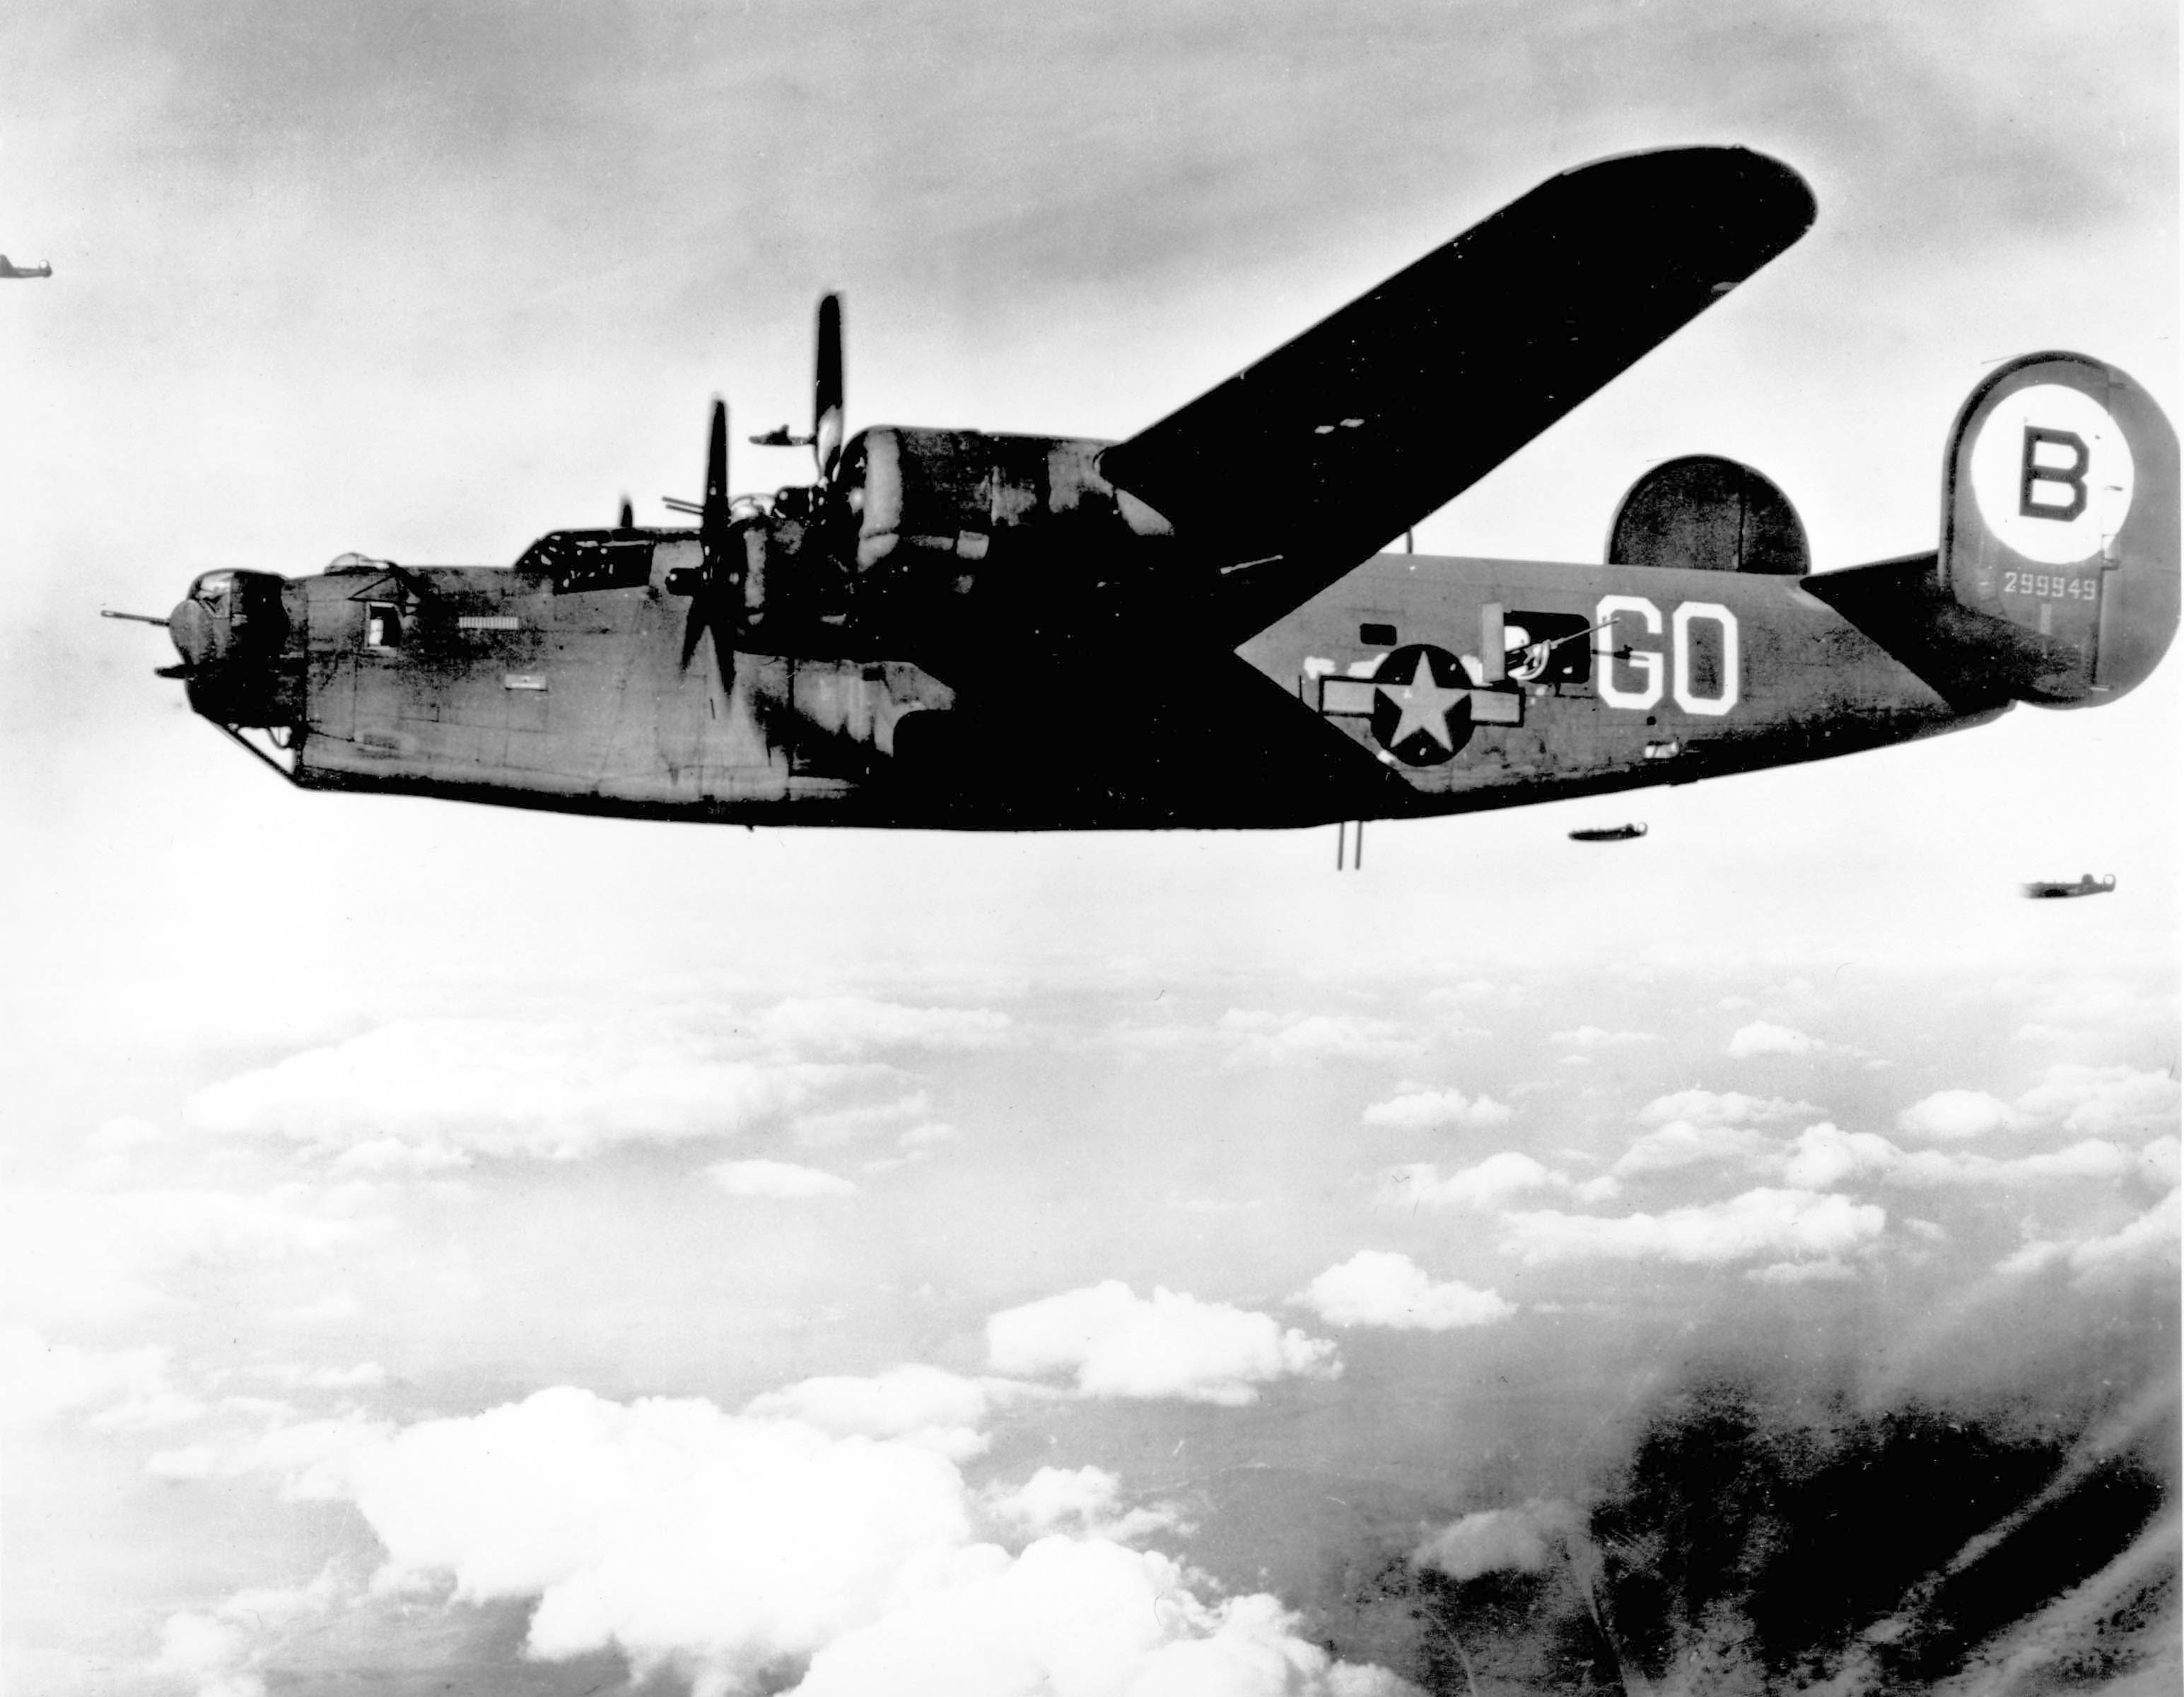 Consolidated B-24 1940's -- Consolidated B-24's over Friedrichshaven, Germany. The B-24 was employed in operations in every combat theater during World War II. (U.S. Air Force photo